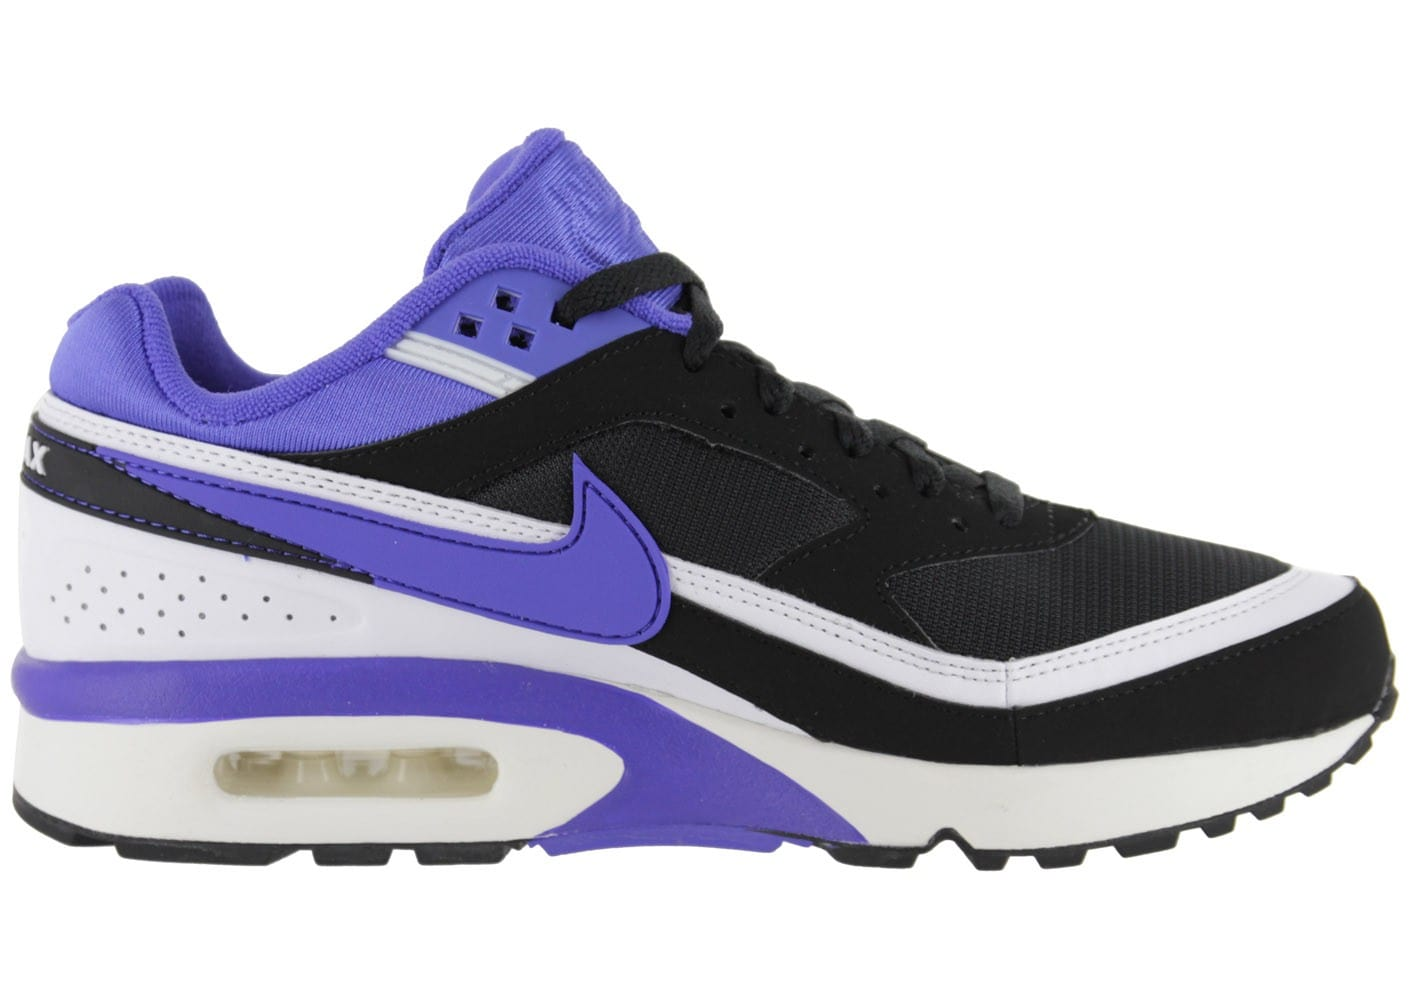 bas prix f604f bf036 Nike Air Max Bw Classic Persian Violet - Chaussures Baskets ...